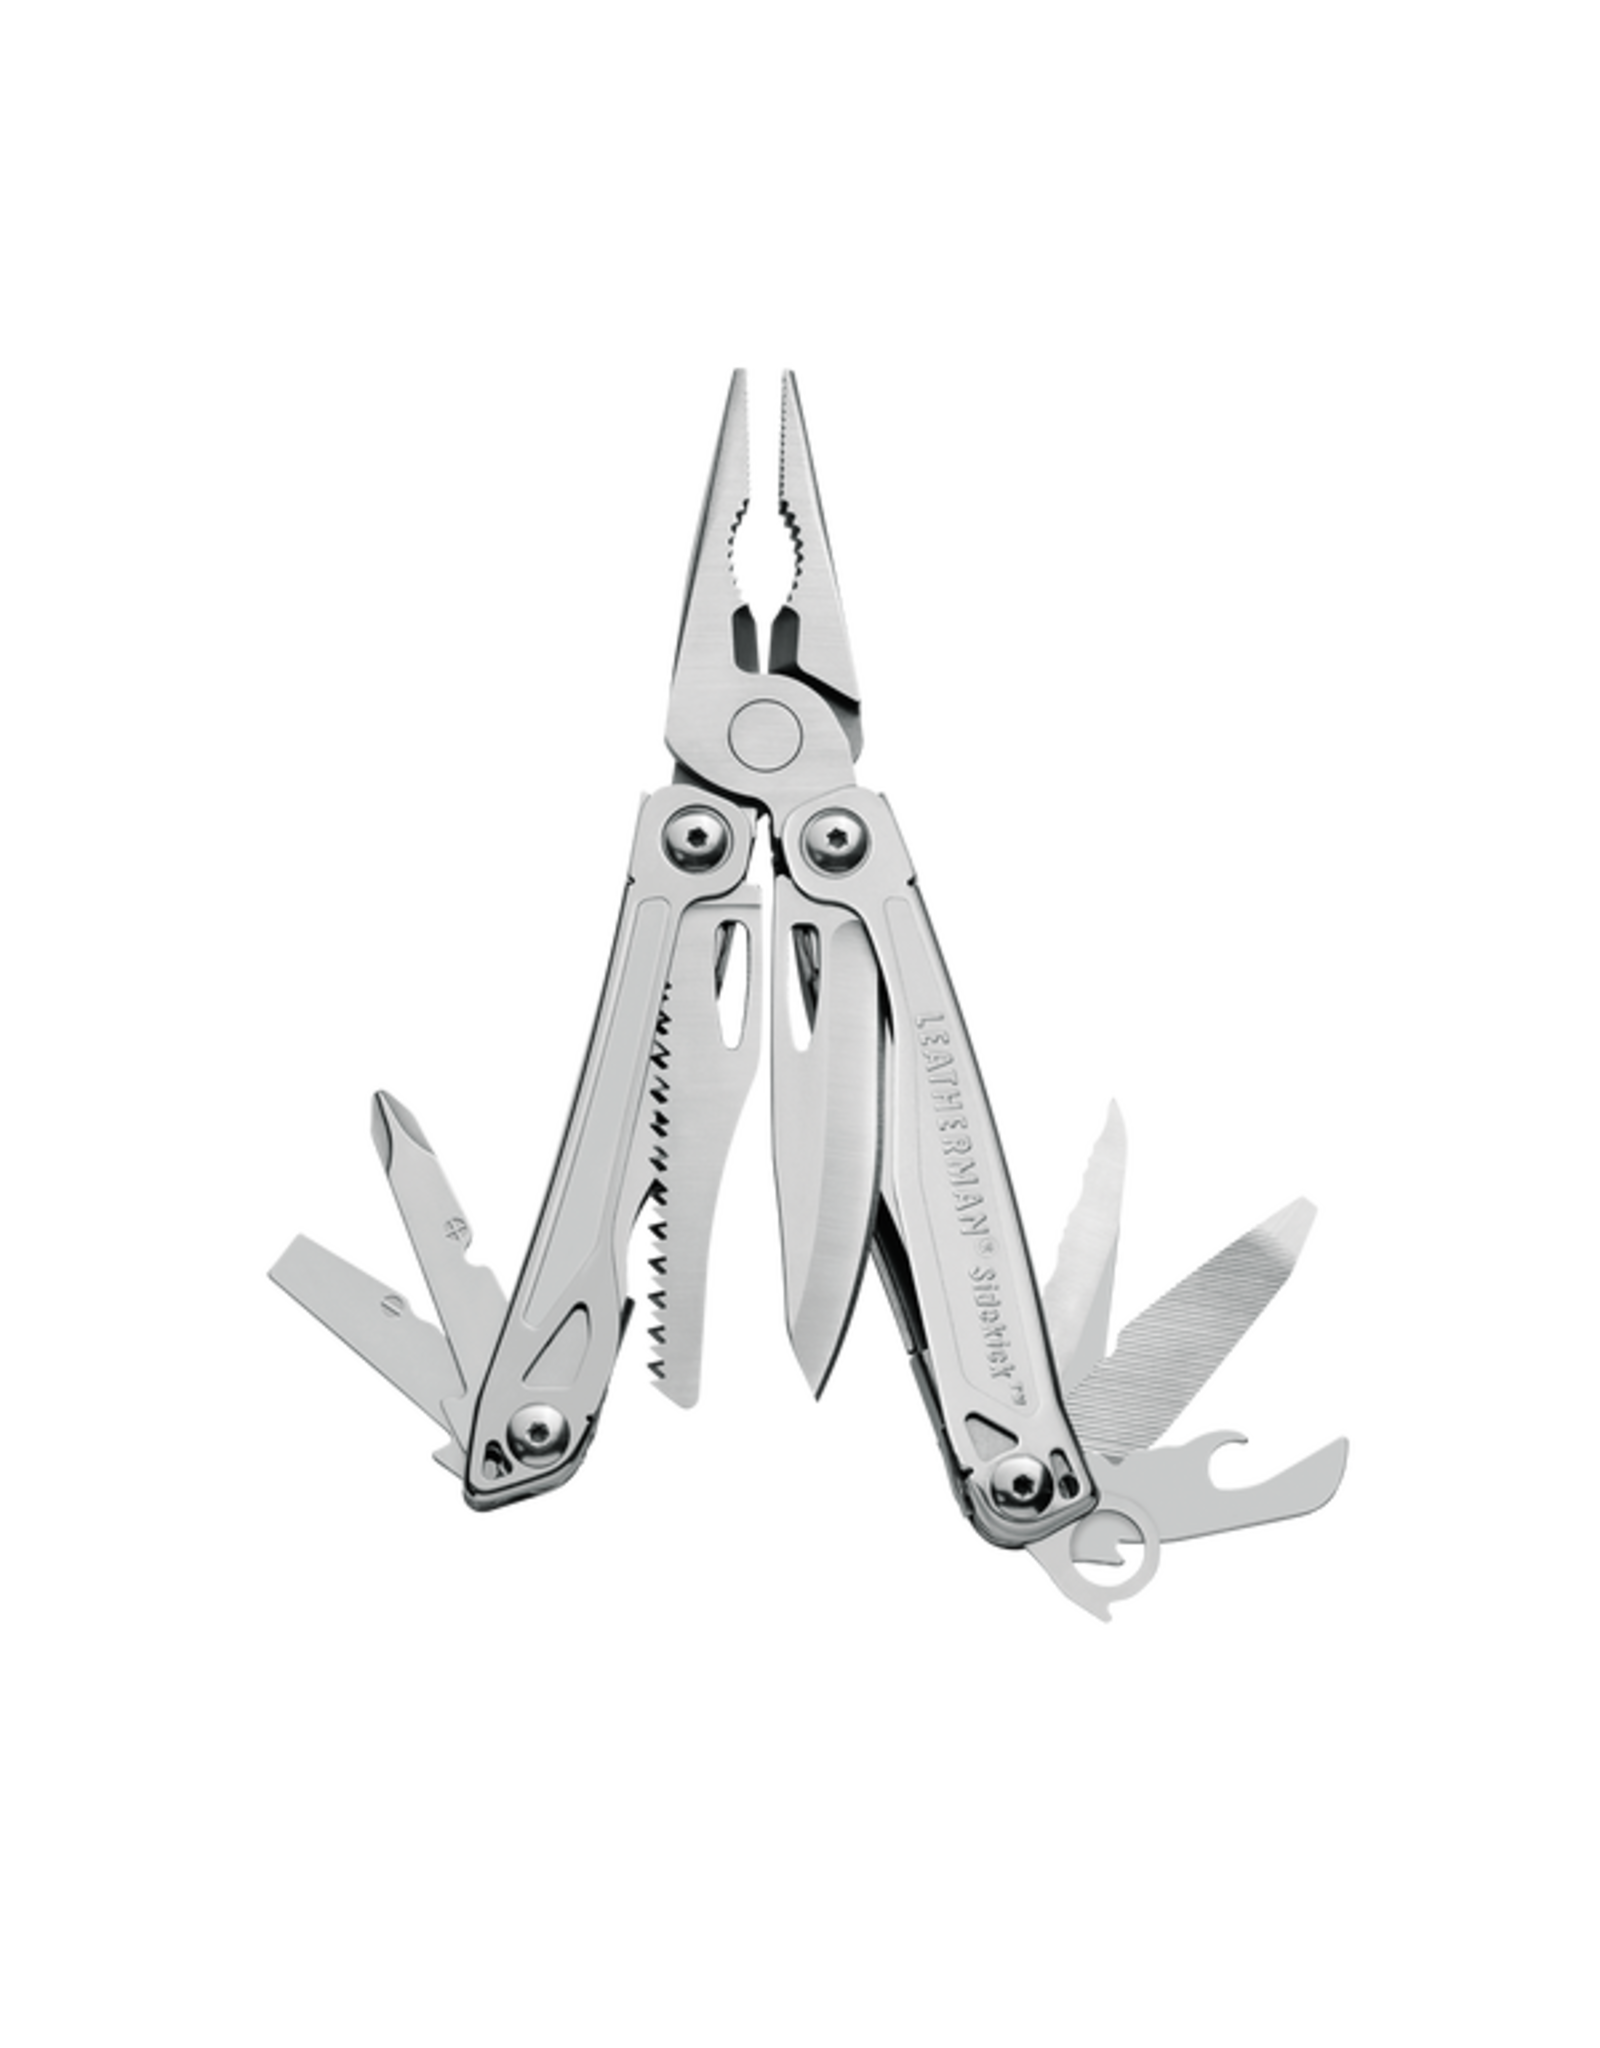 LEATHERMAN LEATHERMAN SIDEKICK